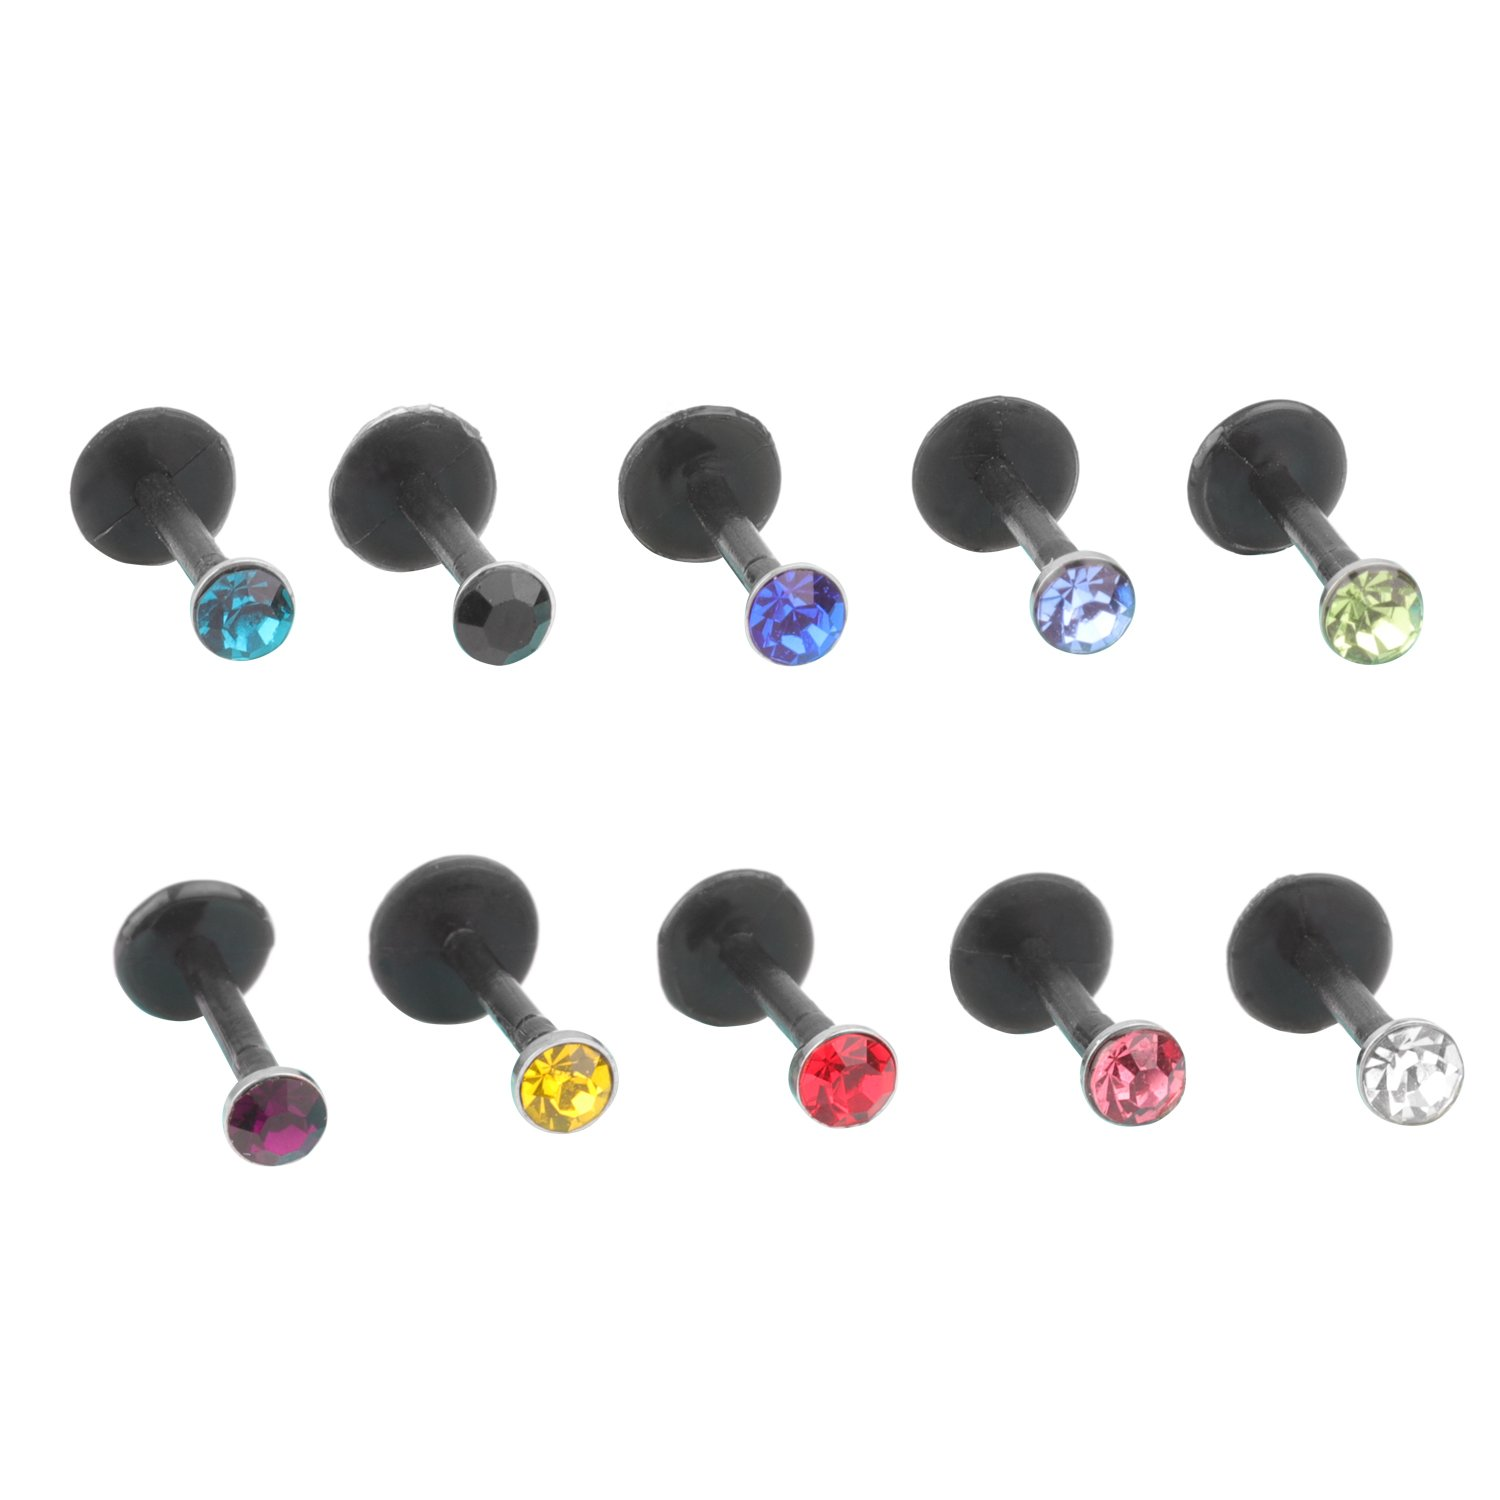 FB 16G 6mm Length Clear UV Flexible Acrylic Labret Lip Ring Tragus Helix Cartilage Earring Stud Barbell Piercing Jewelry……